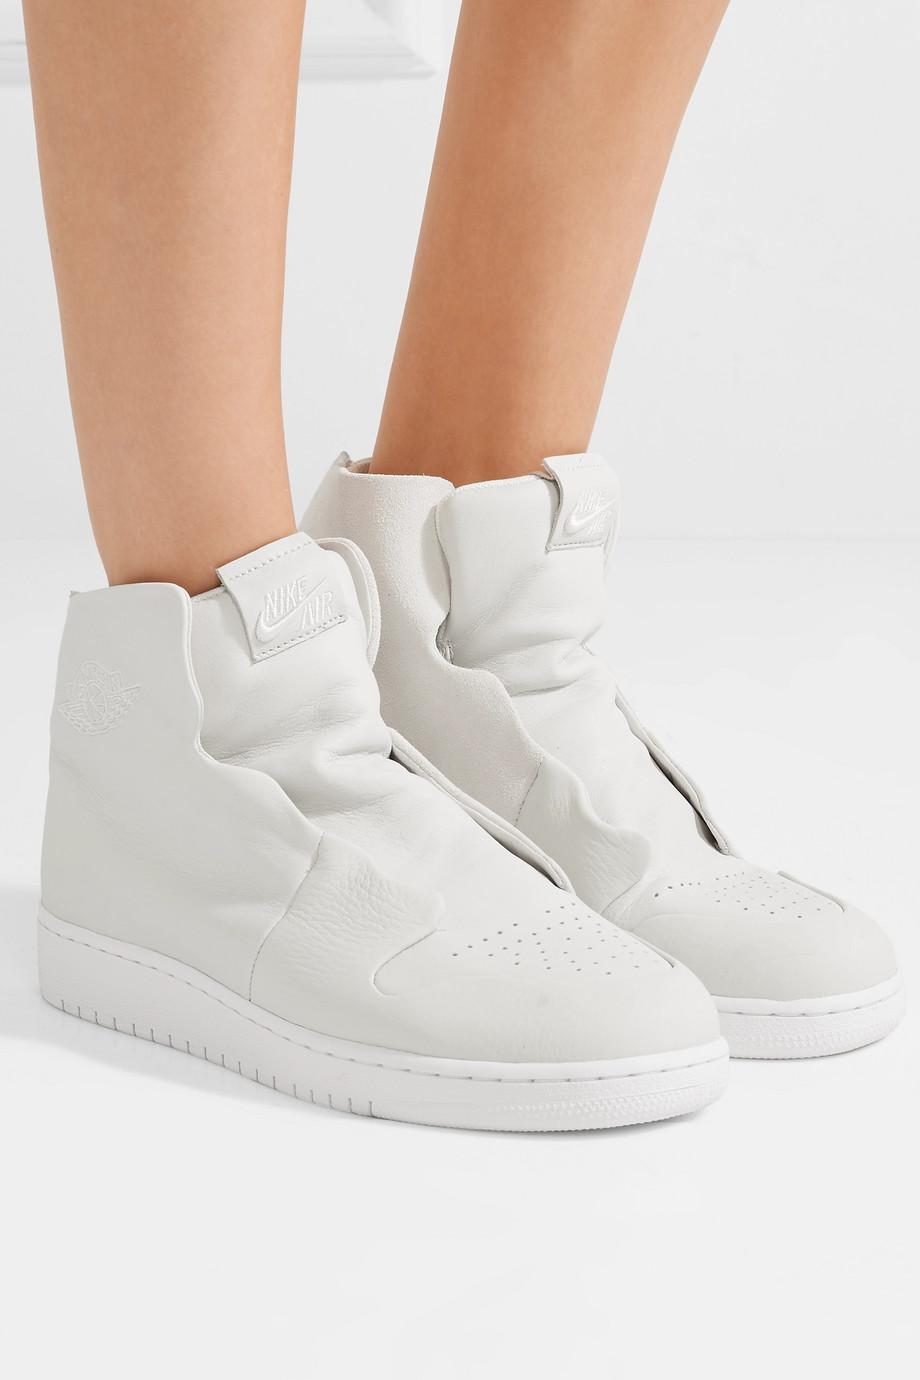 1f27cc0fc612 Lyst - Nike The 1 s Reimagined Air Jordan 1 Sage Suede And Leather ...